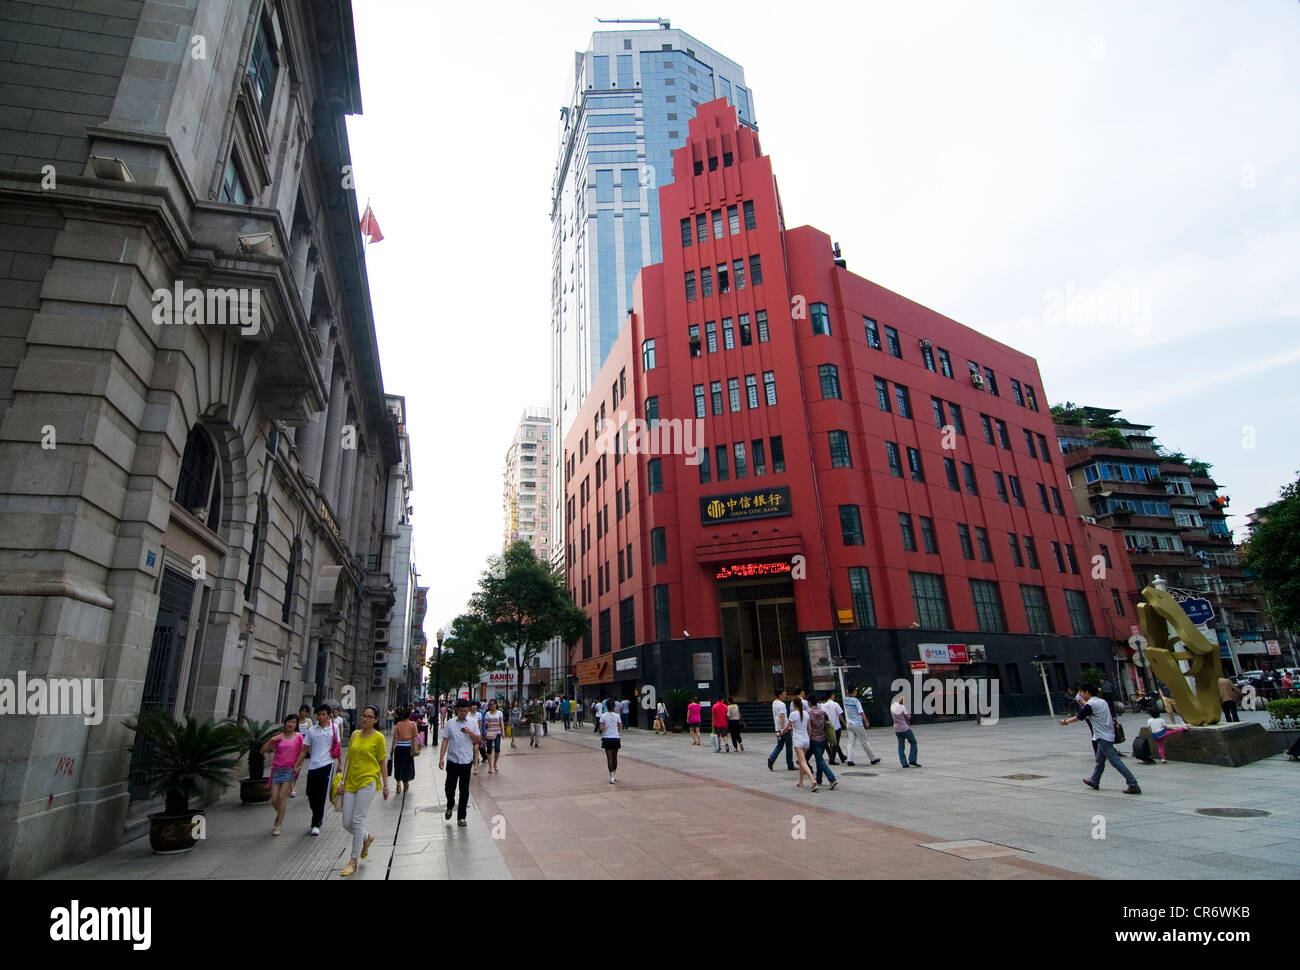 The old concession area of Hankou / Wuhan is a busy business and shopping district. - Stock Image